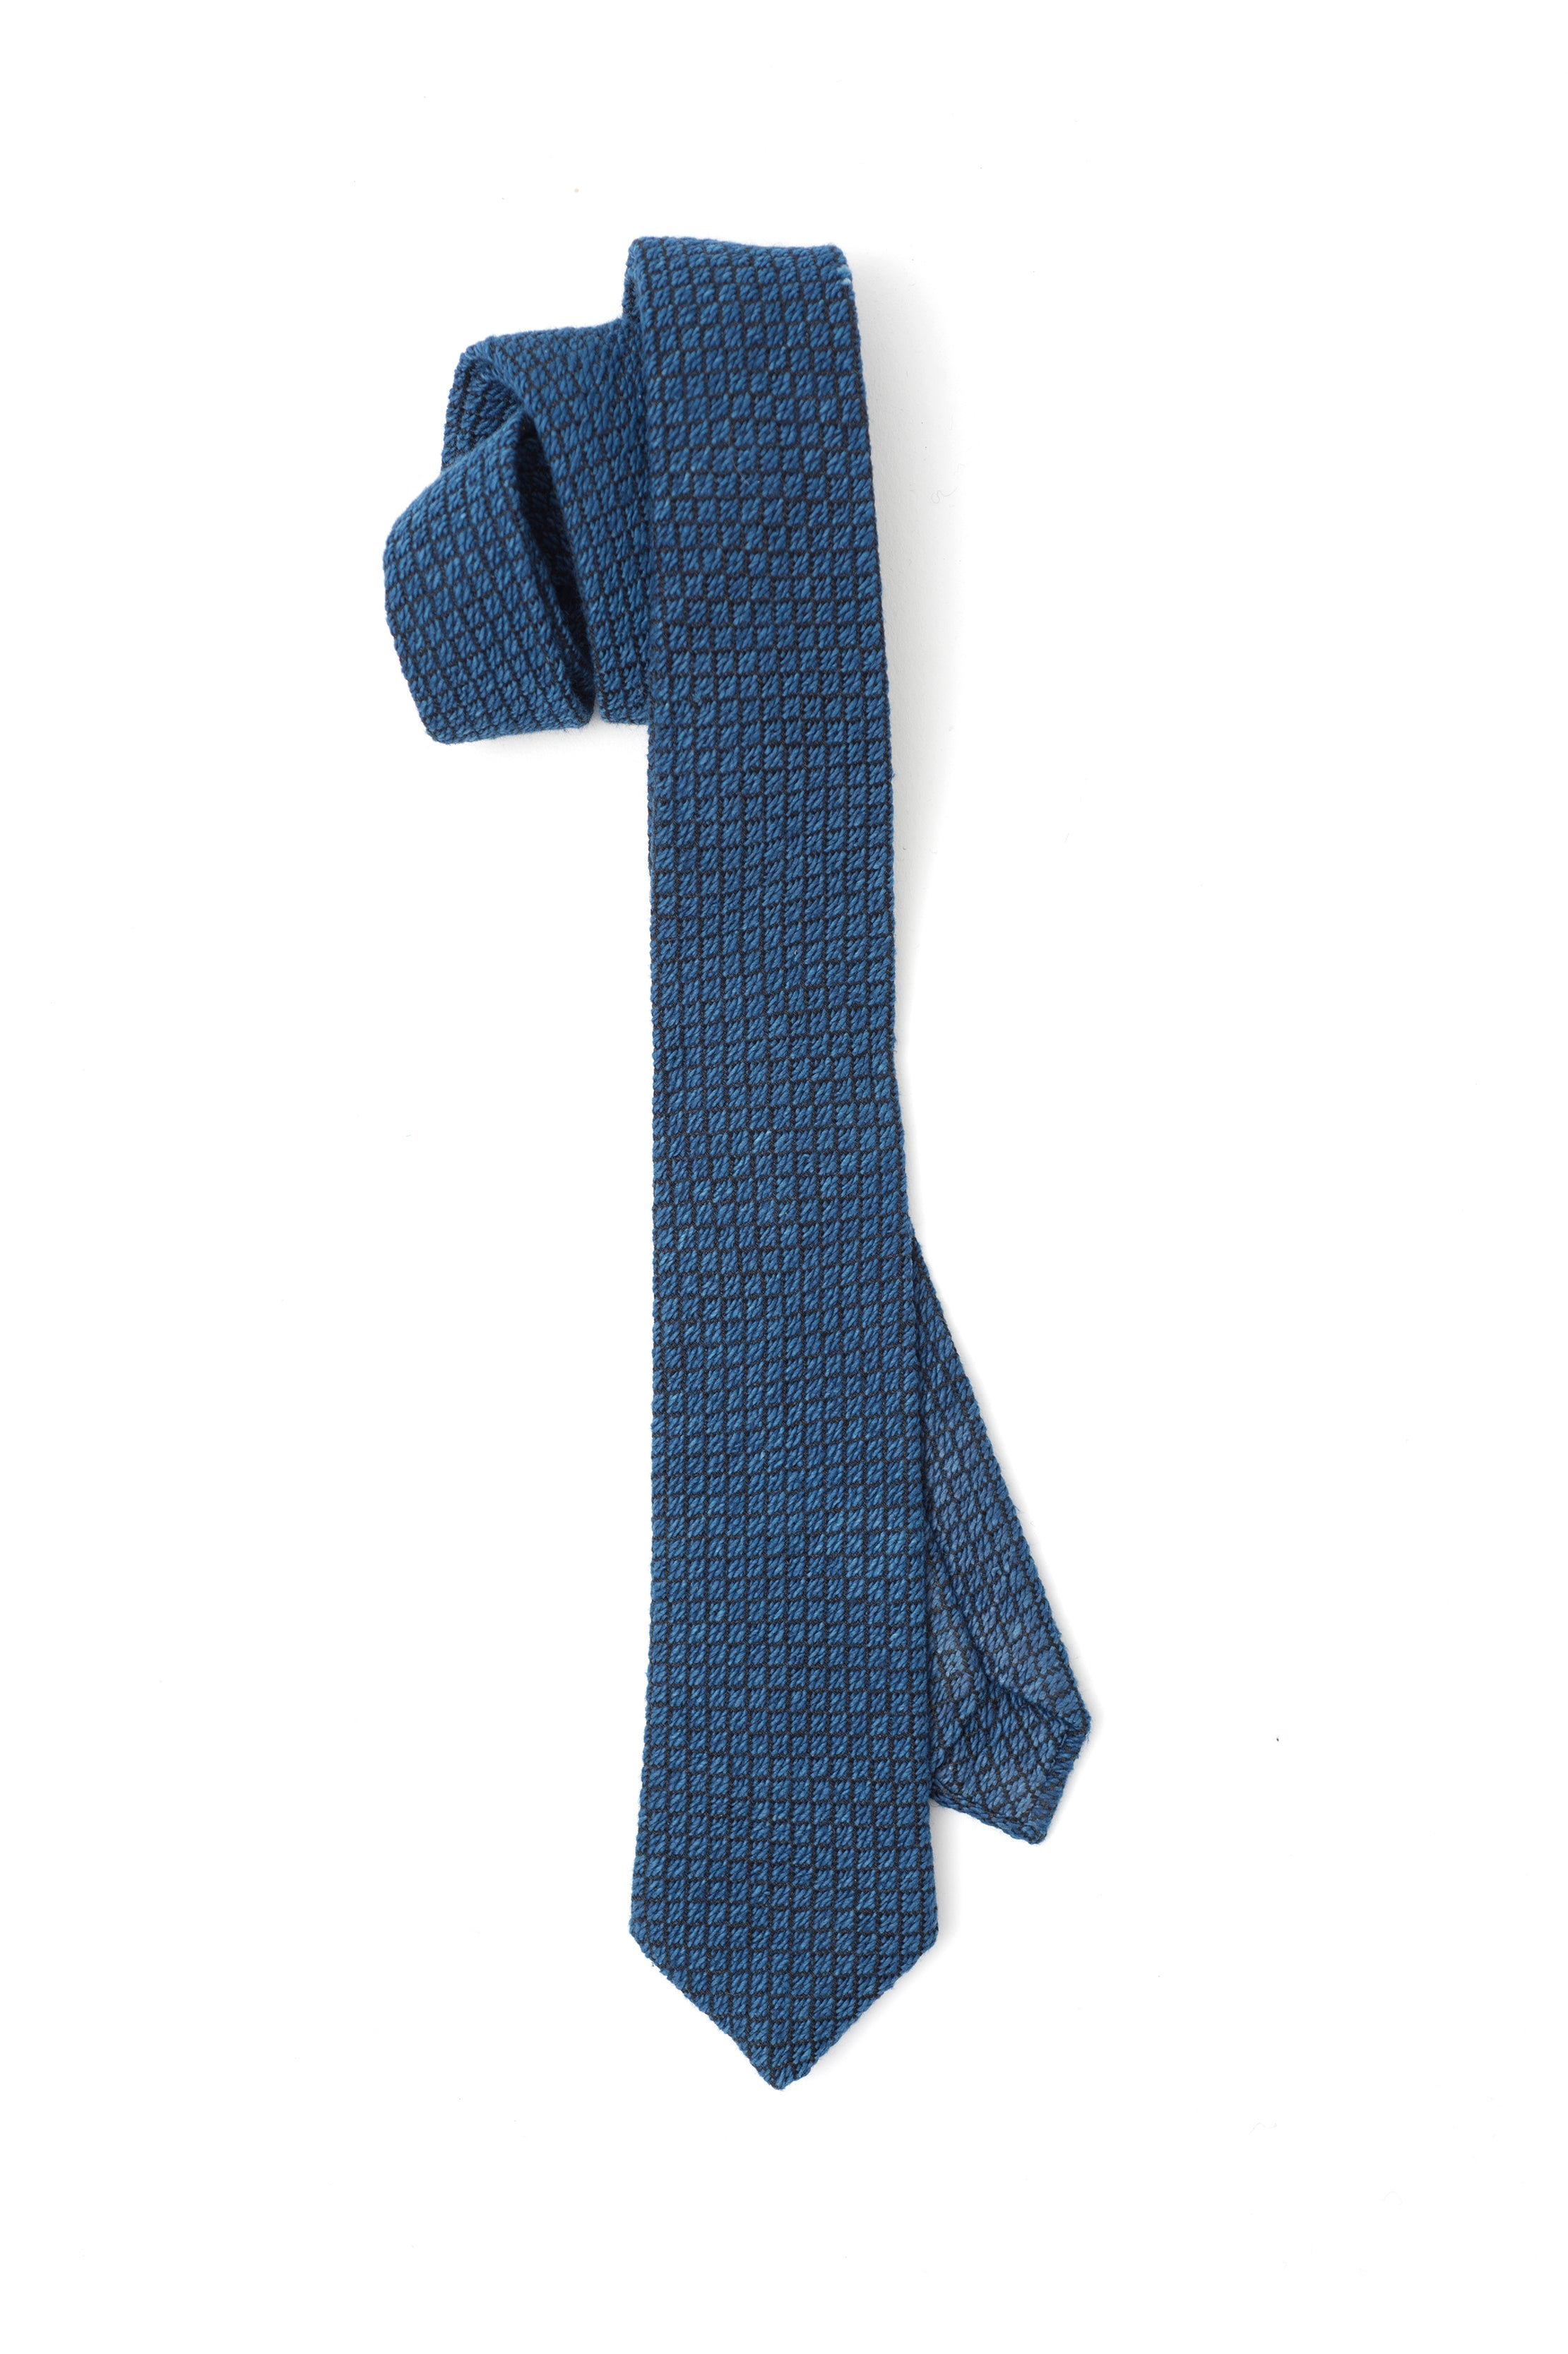 DIAMONDS NECKTIE – hand loomed